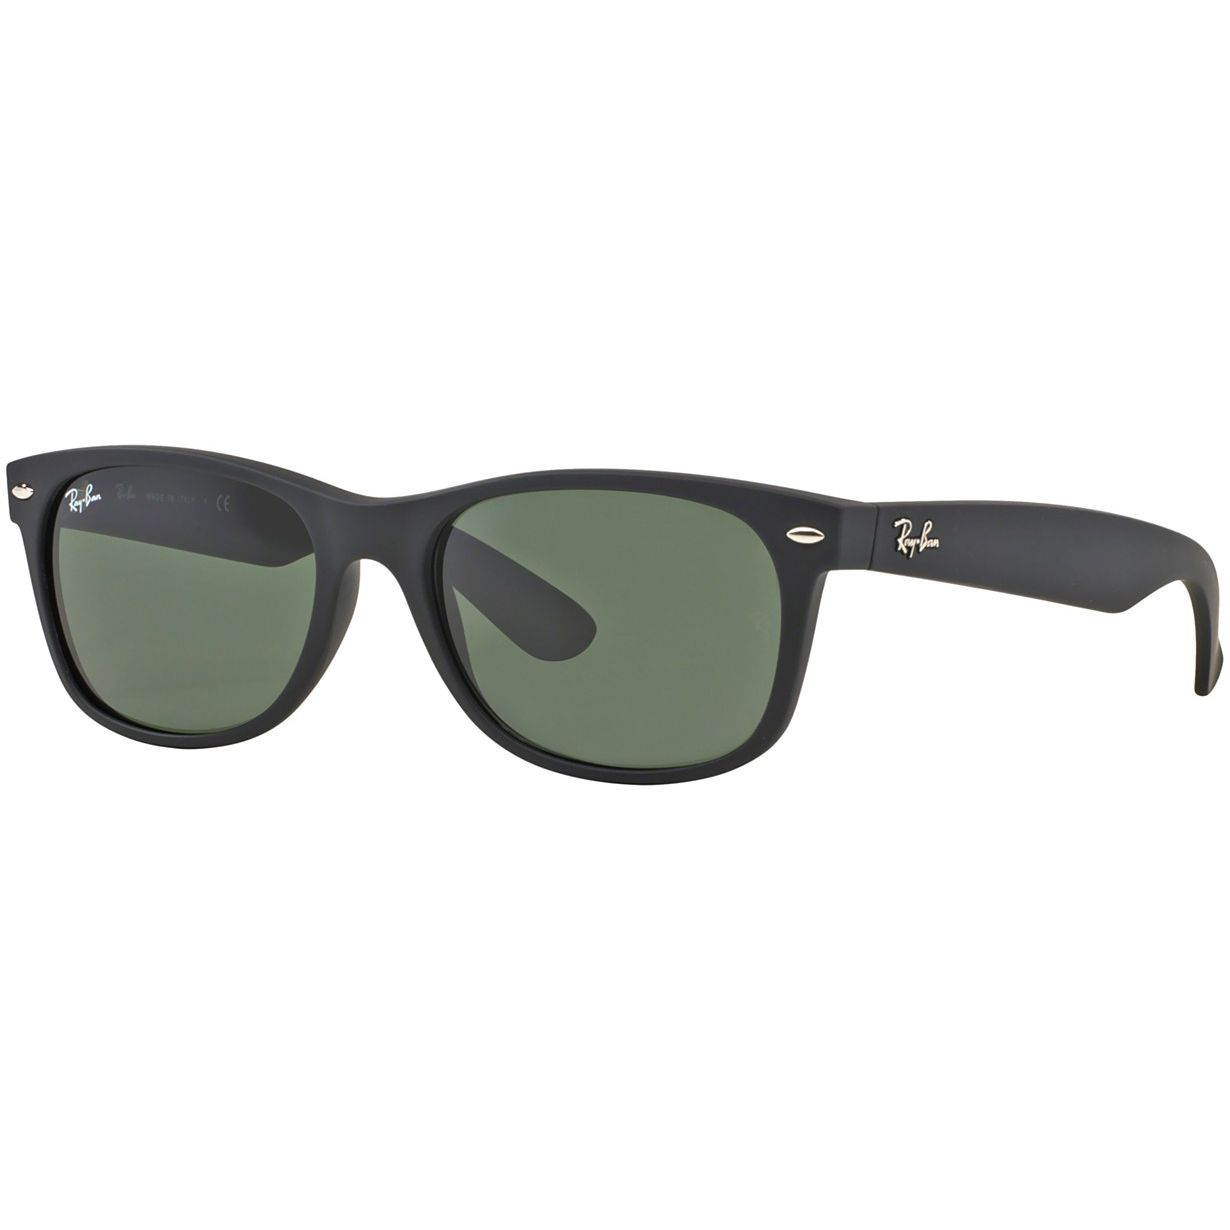 dd7cb5711f Best for Men  Ray-Ban New Wayfarer Polarized Sunglasses